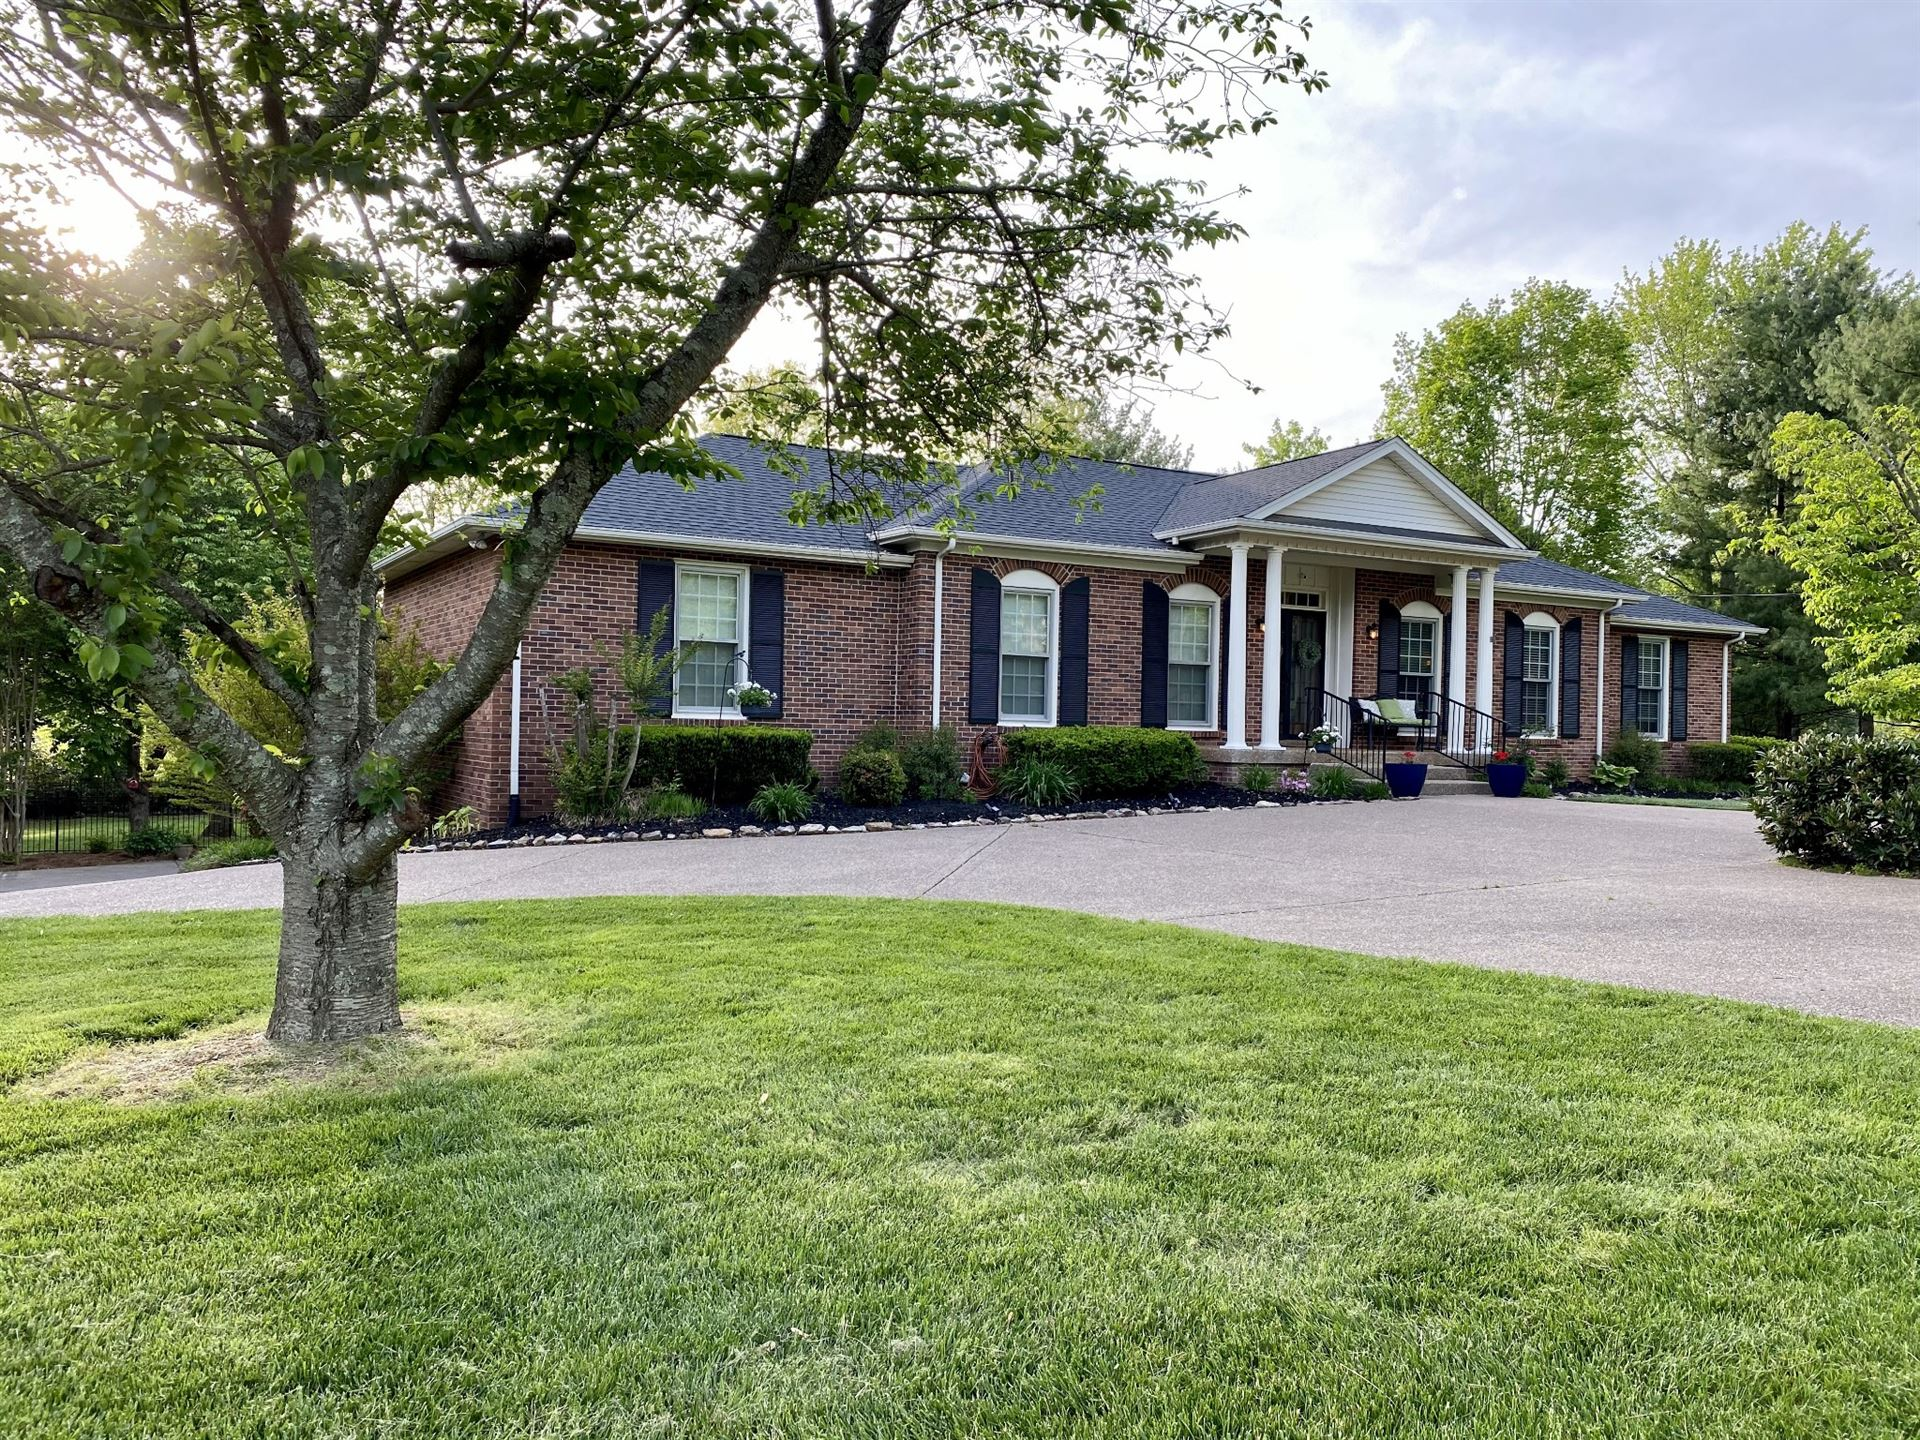 Photo of 915 Steeplechase Dr, Brentwood, TN 37027 (MLS # 2248415)